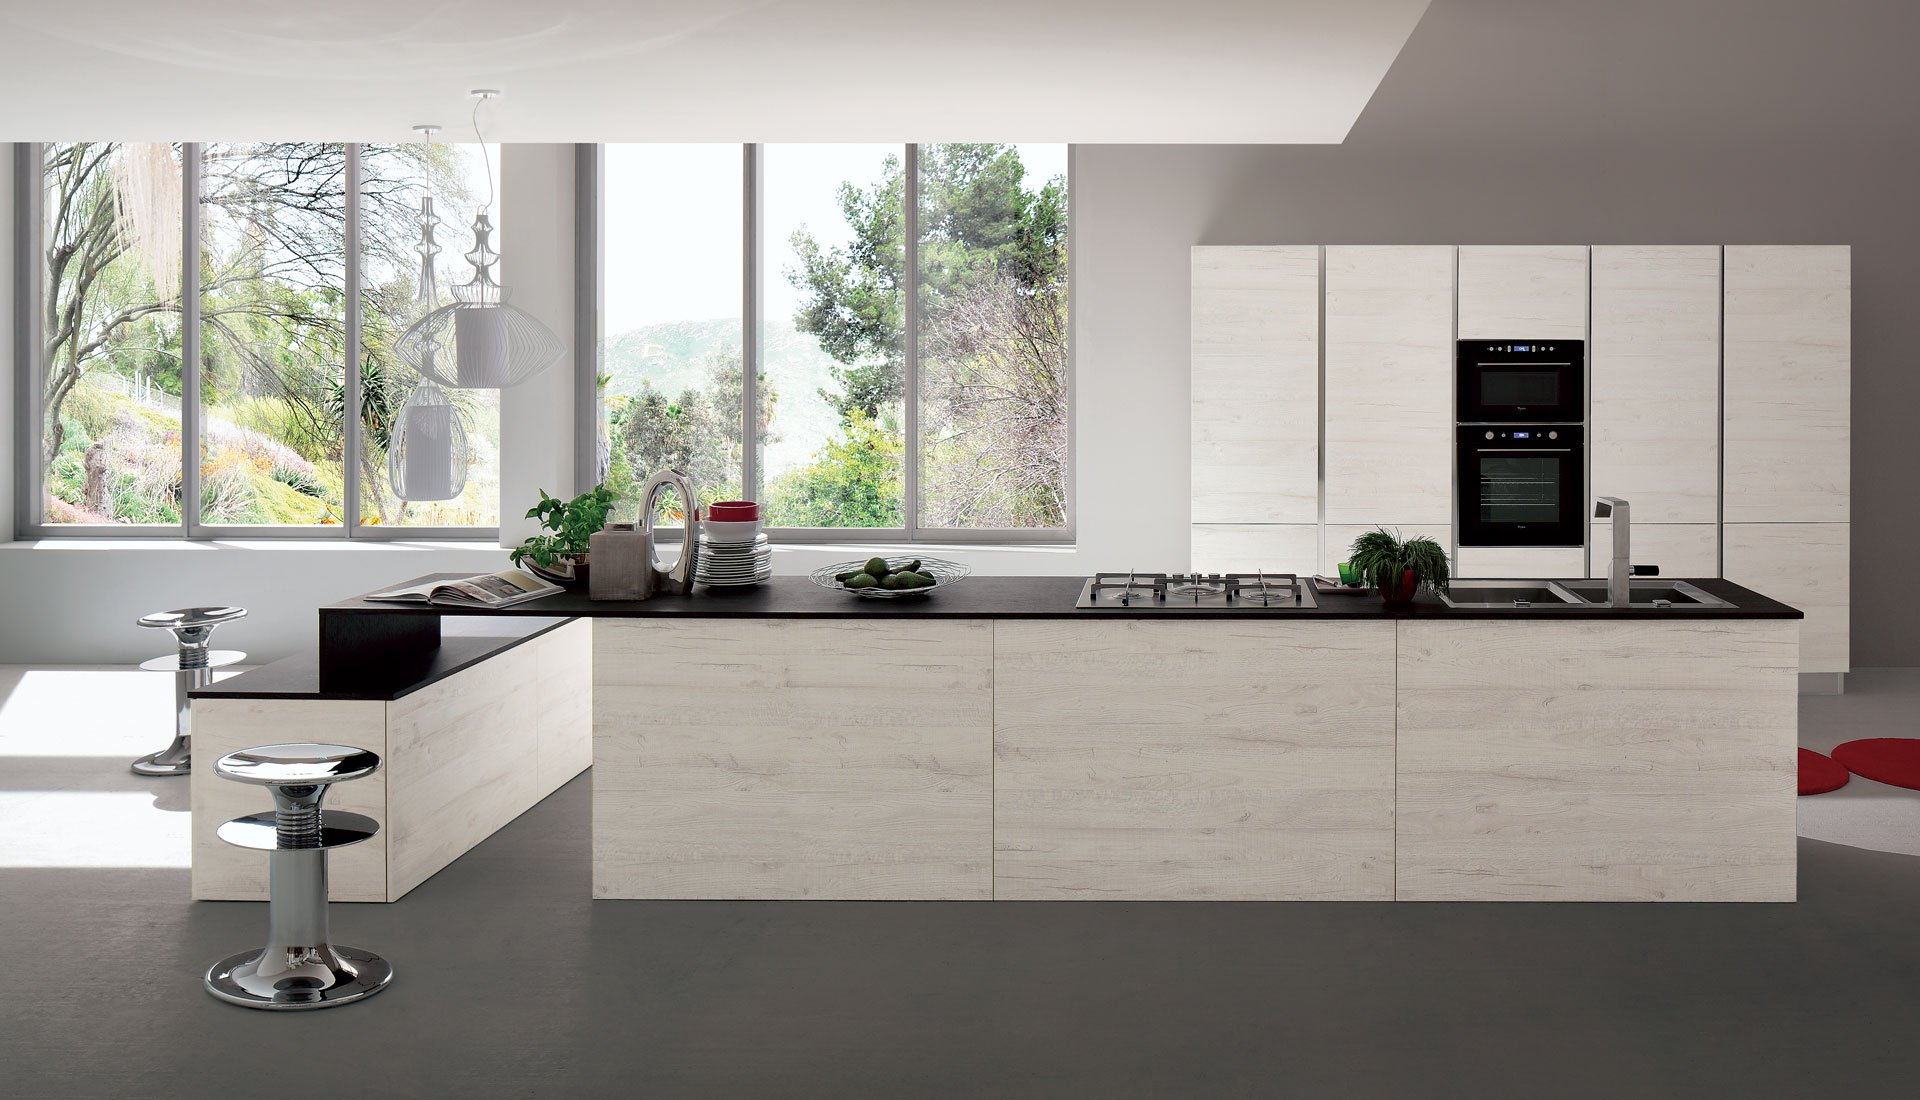 Awesome Rovere Sbiancato Cucina Gallery - Lepicentre.info ...